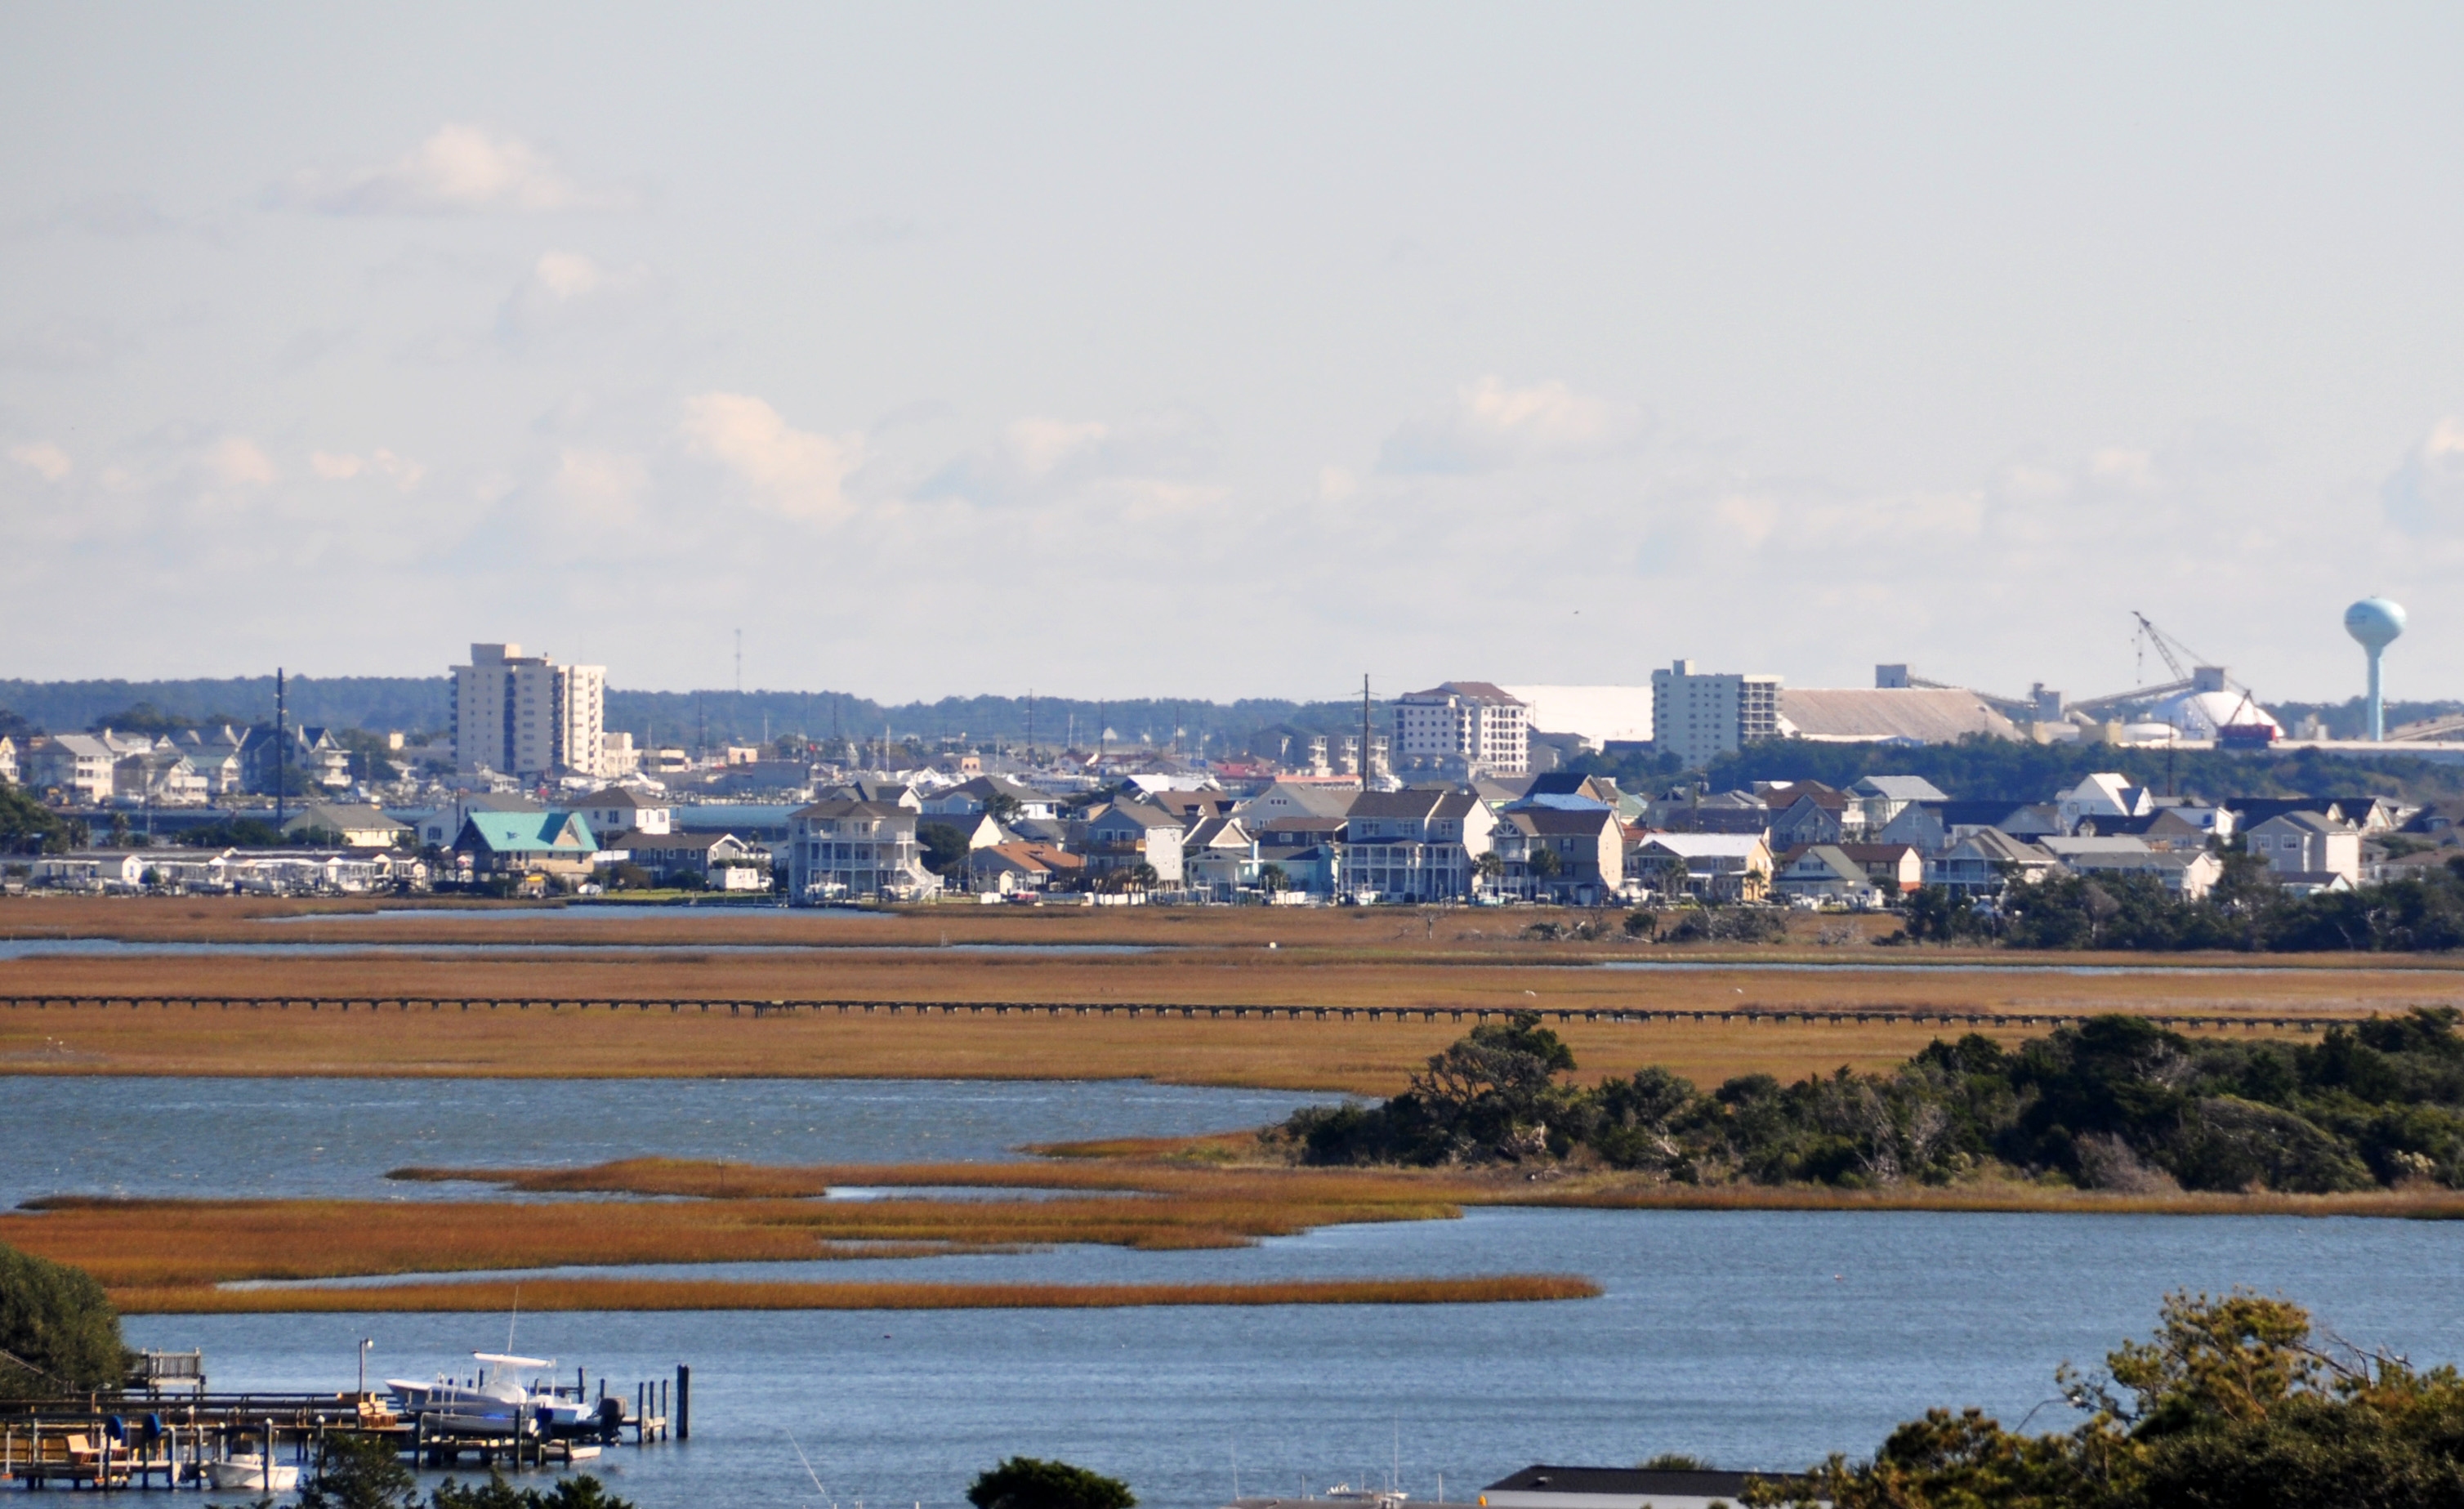 Certified nurse assistant cna salary in morehead city north about morehead city north carolina 1betcityfo Choice Image